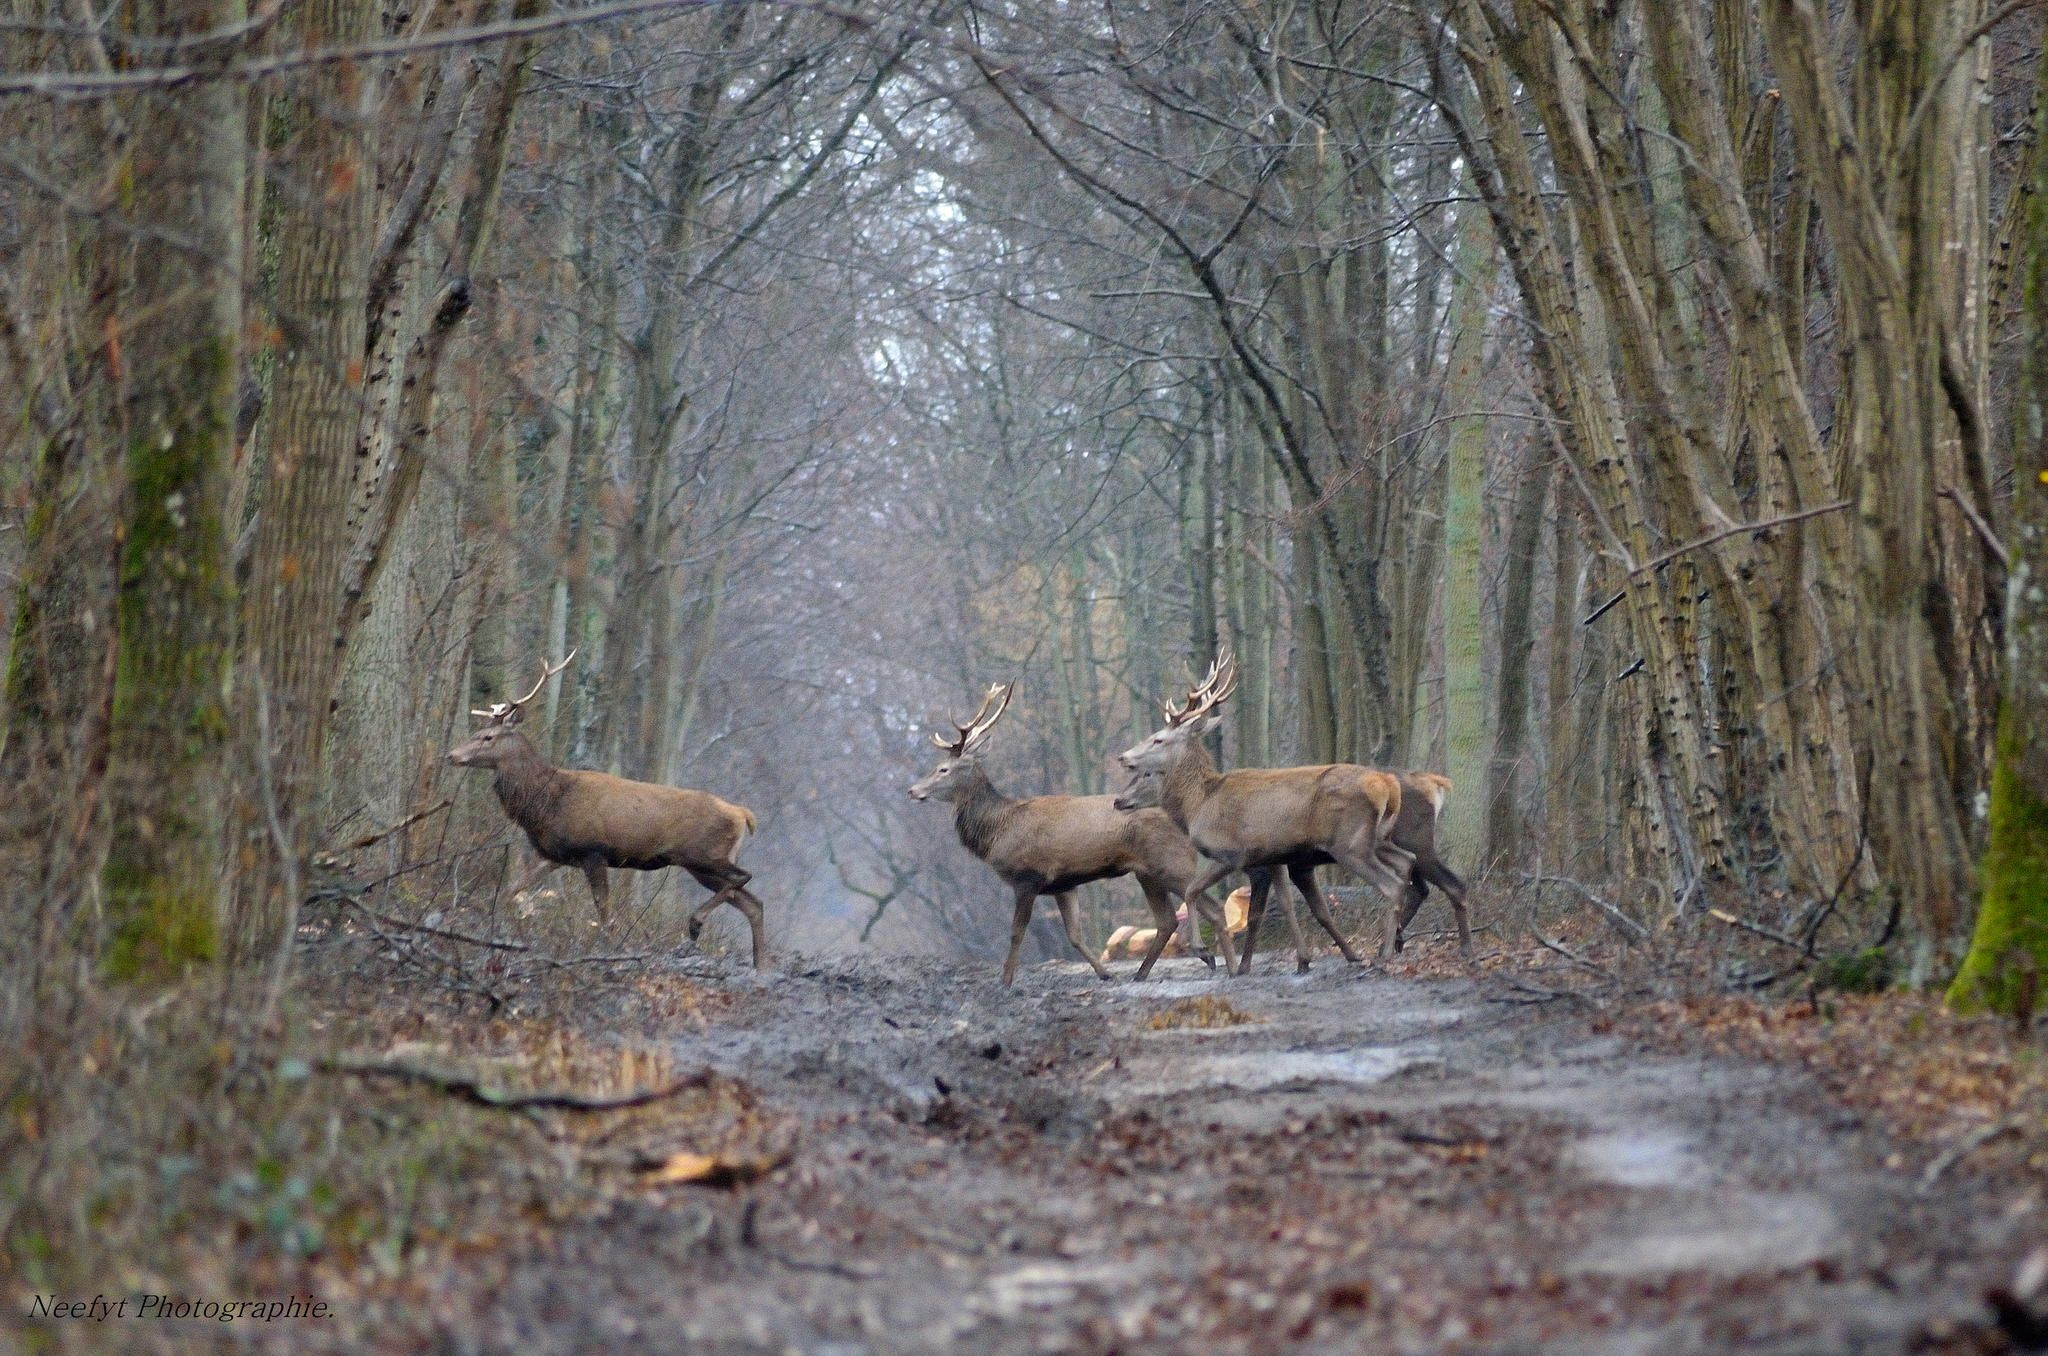 Cerf. by Fabrice Denise on 500px